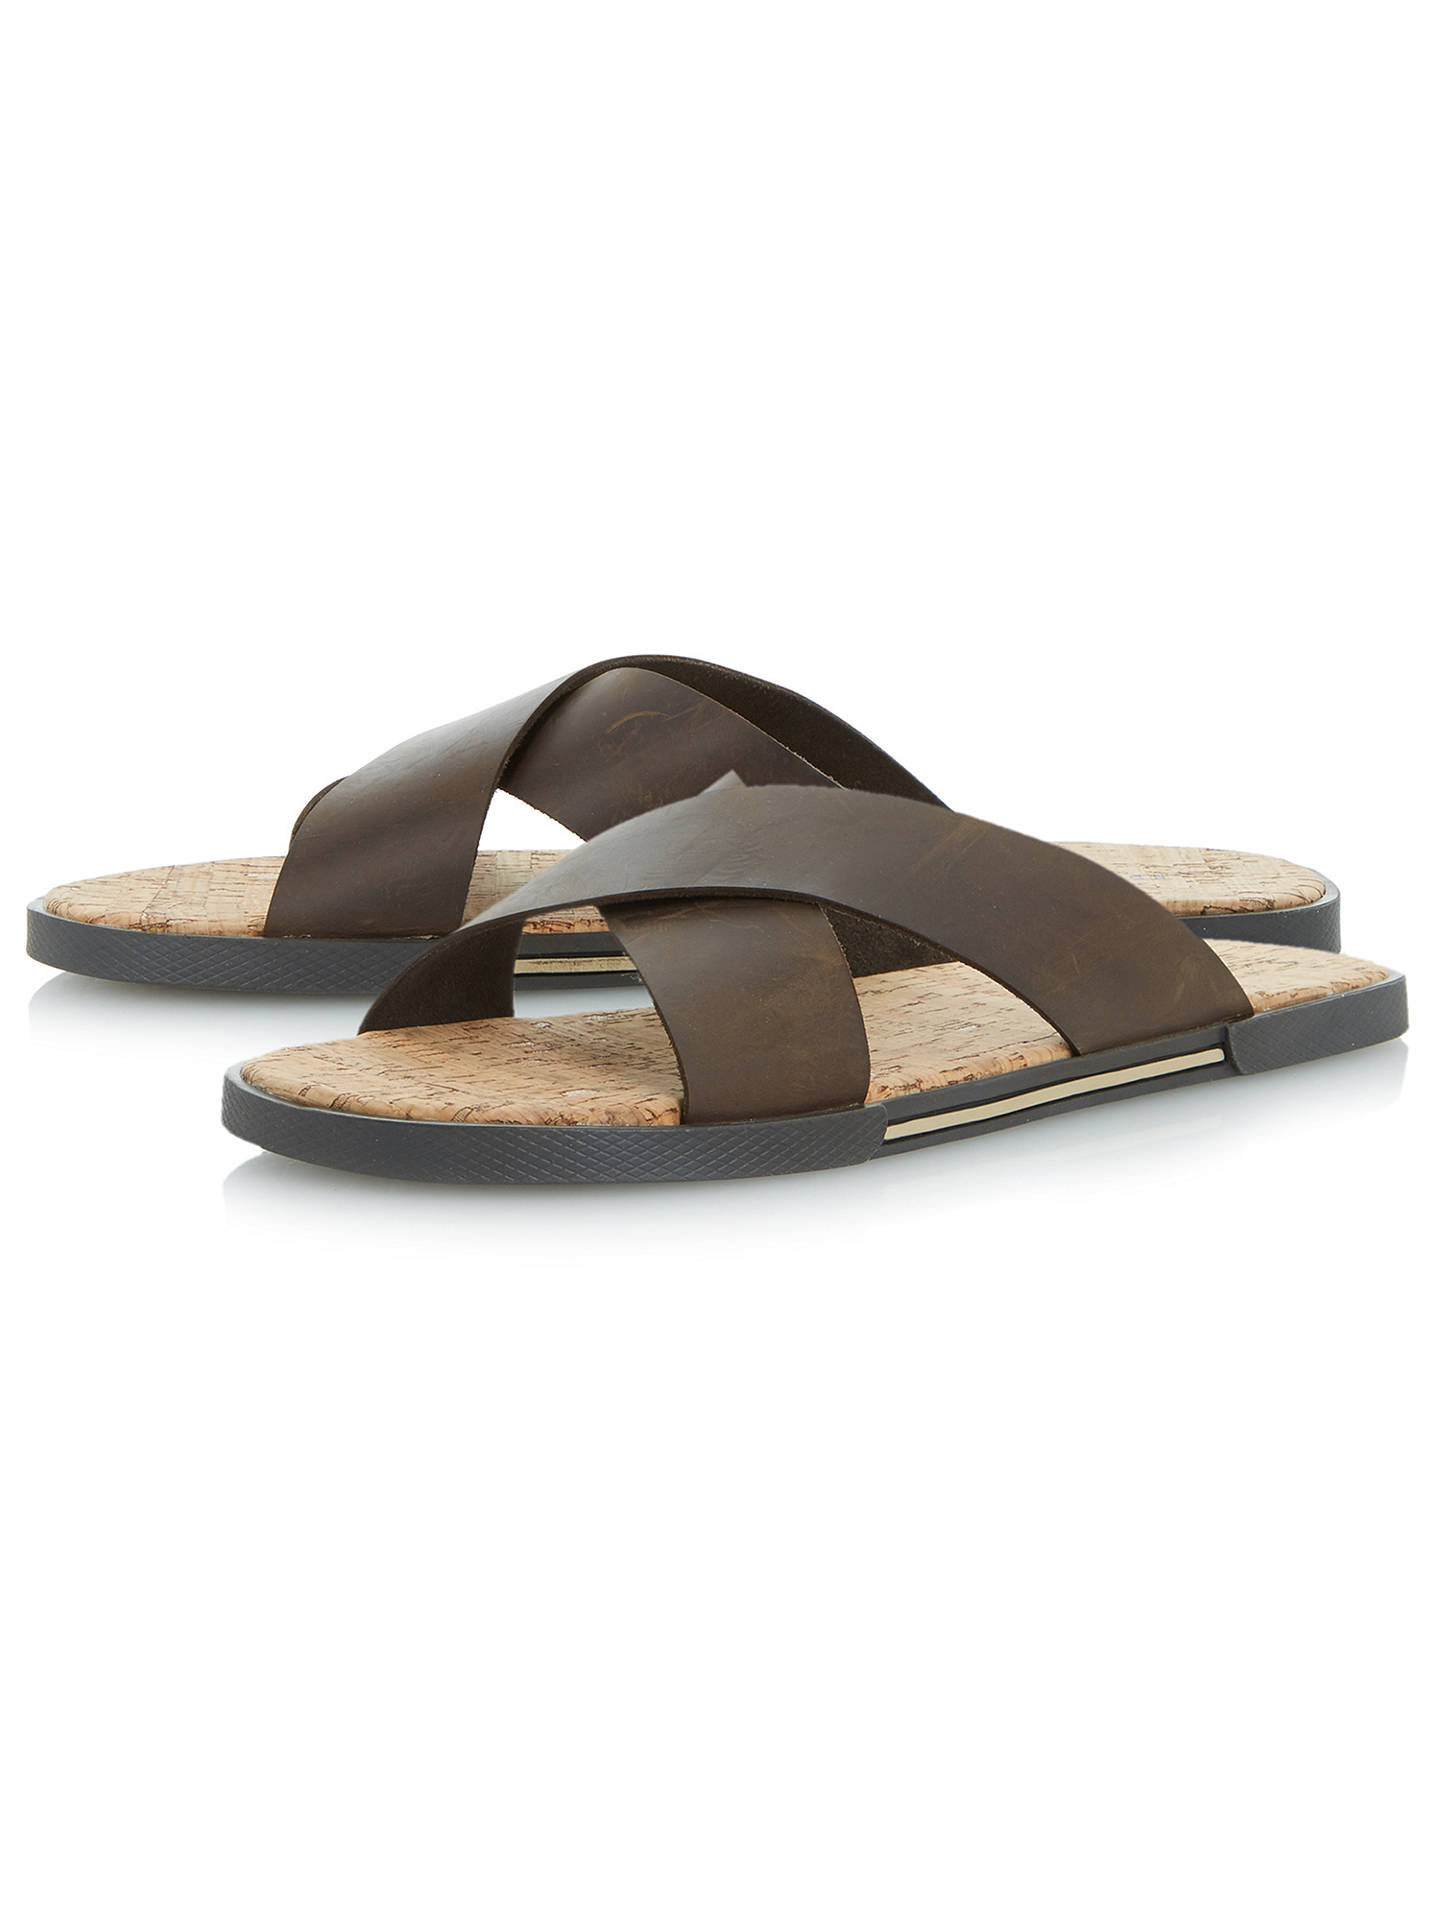 BuyDune Idaho Leather Sandals, Brown, 7 Online at johnlewis.com